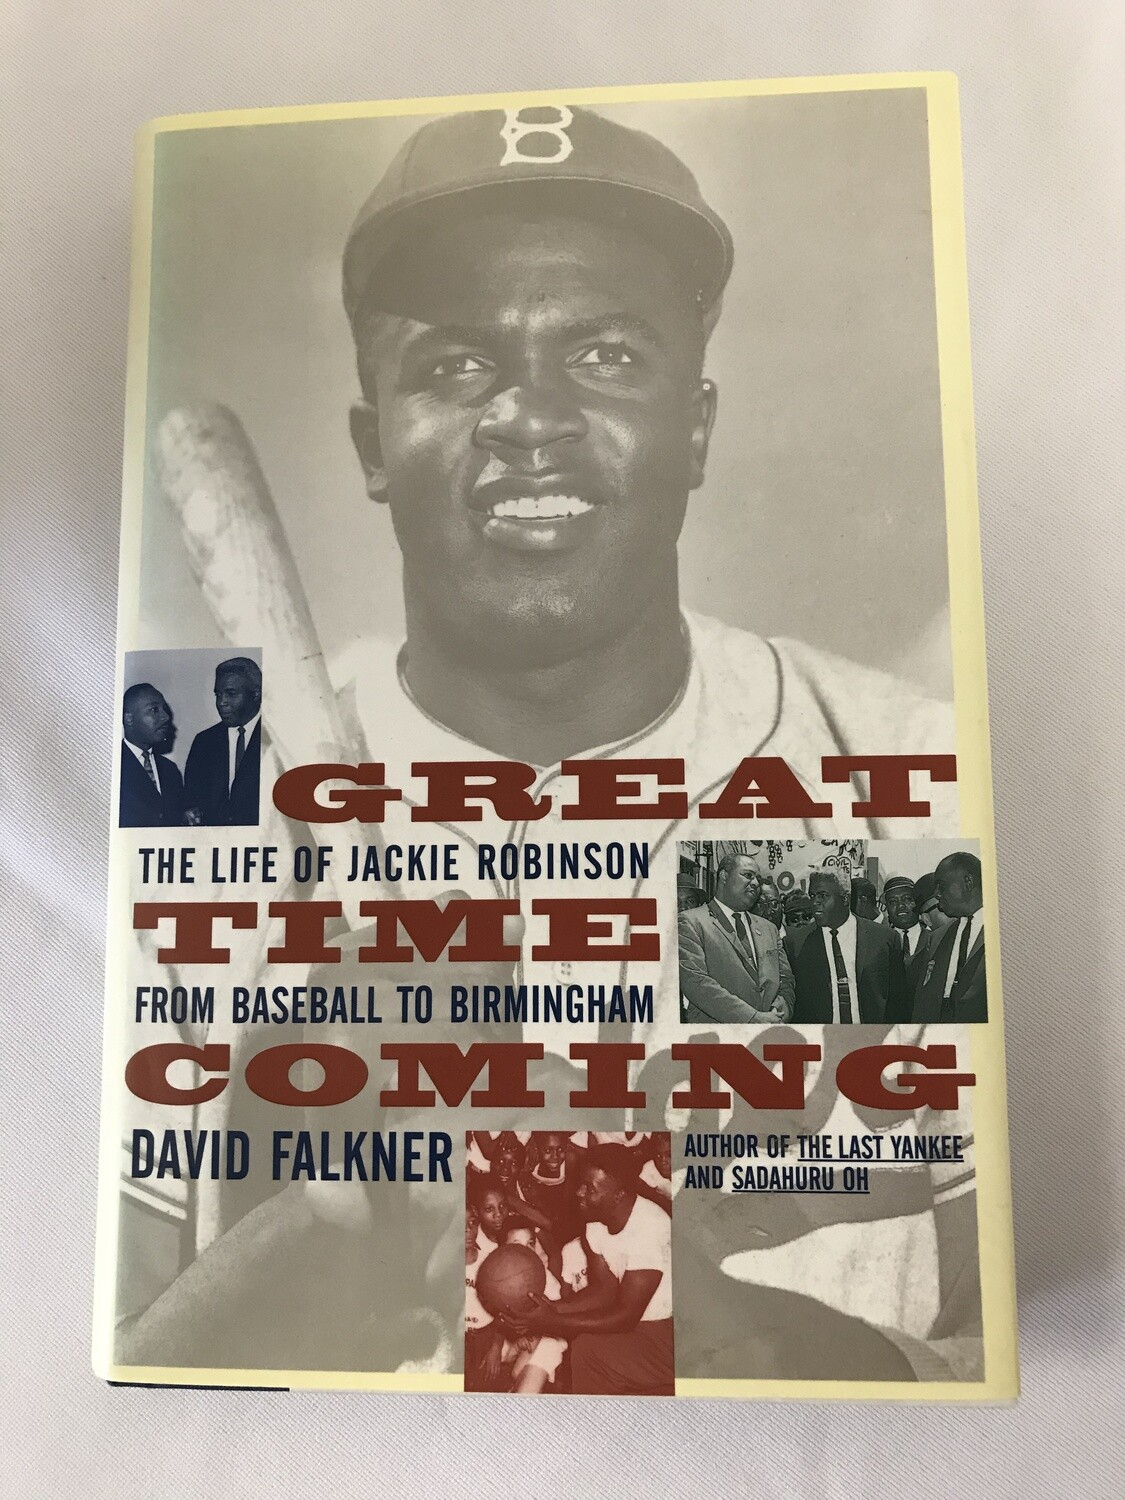 Great Time Coming: The Life of Jackie Robinson from Baseball to Birmingham by David Falkner